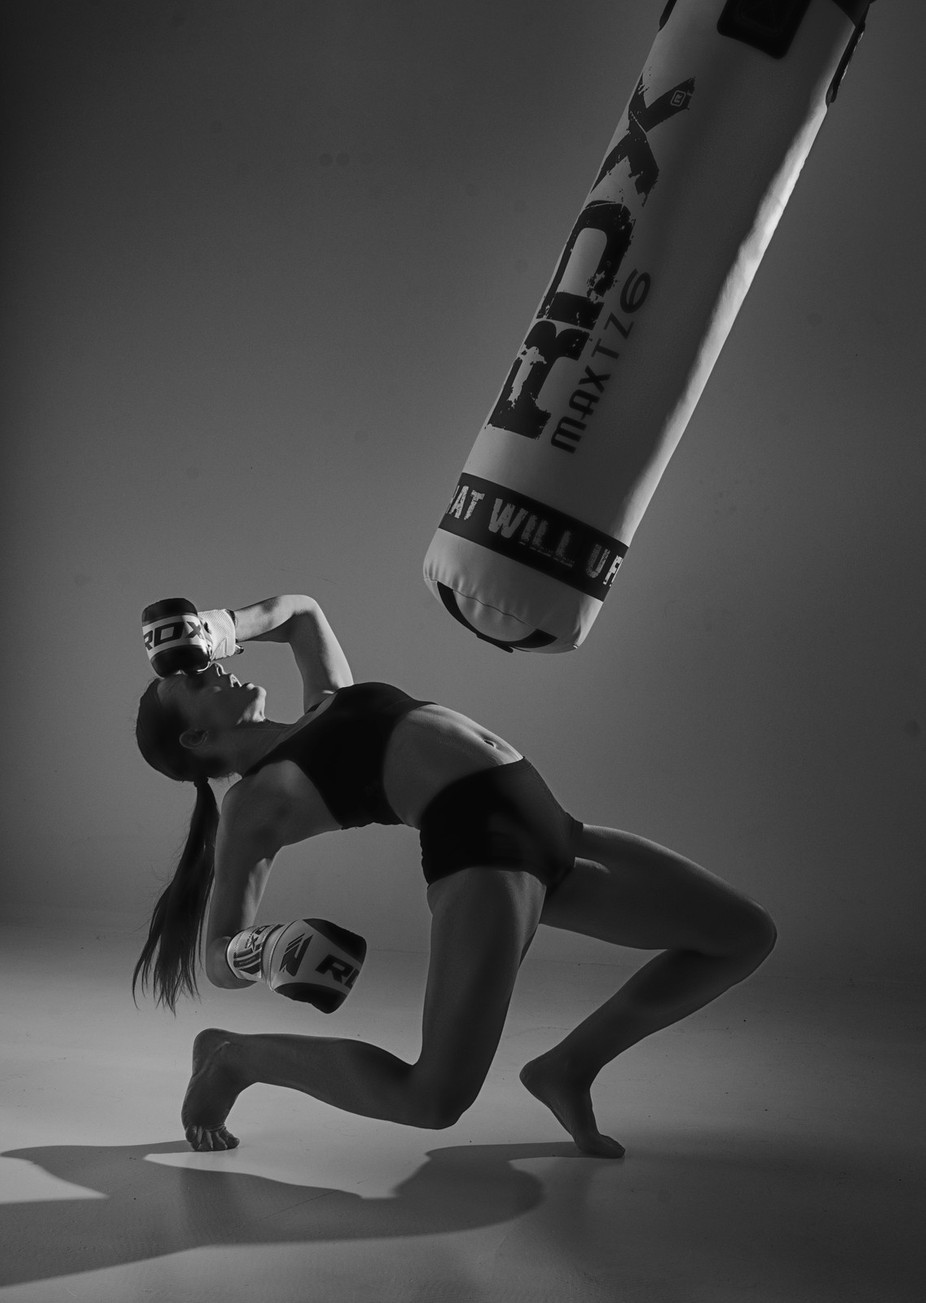 Duck the Punch by AndrewatWolfe - Her In The Studio Photo Contest